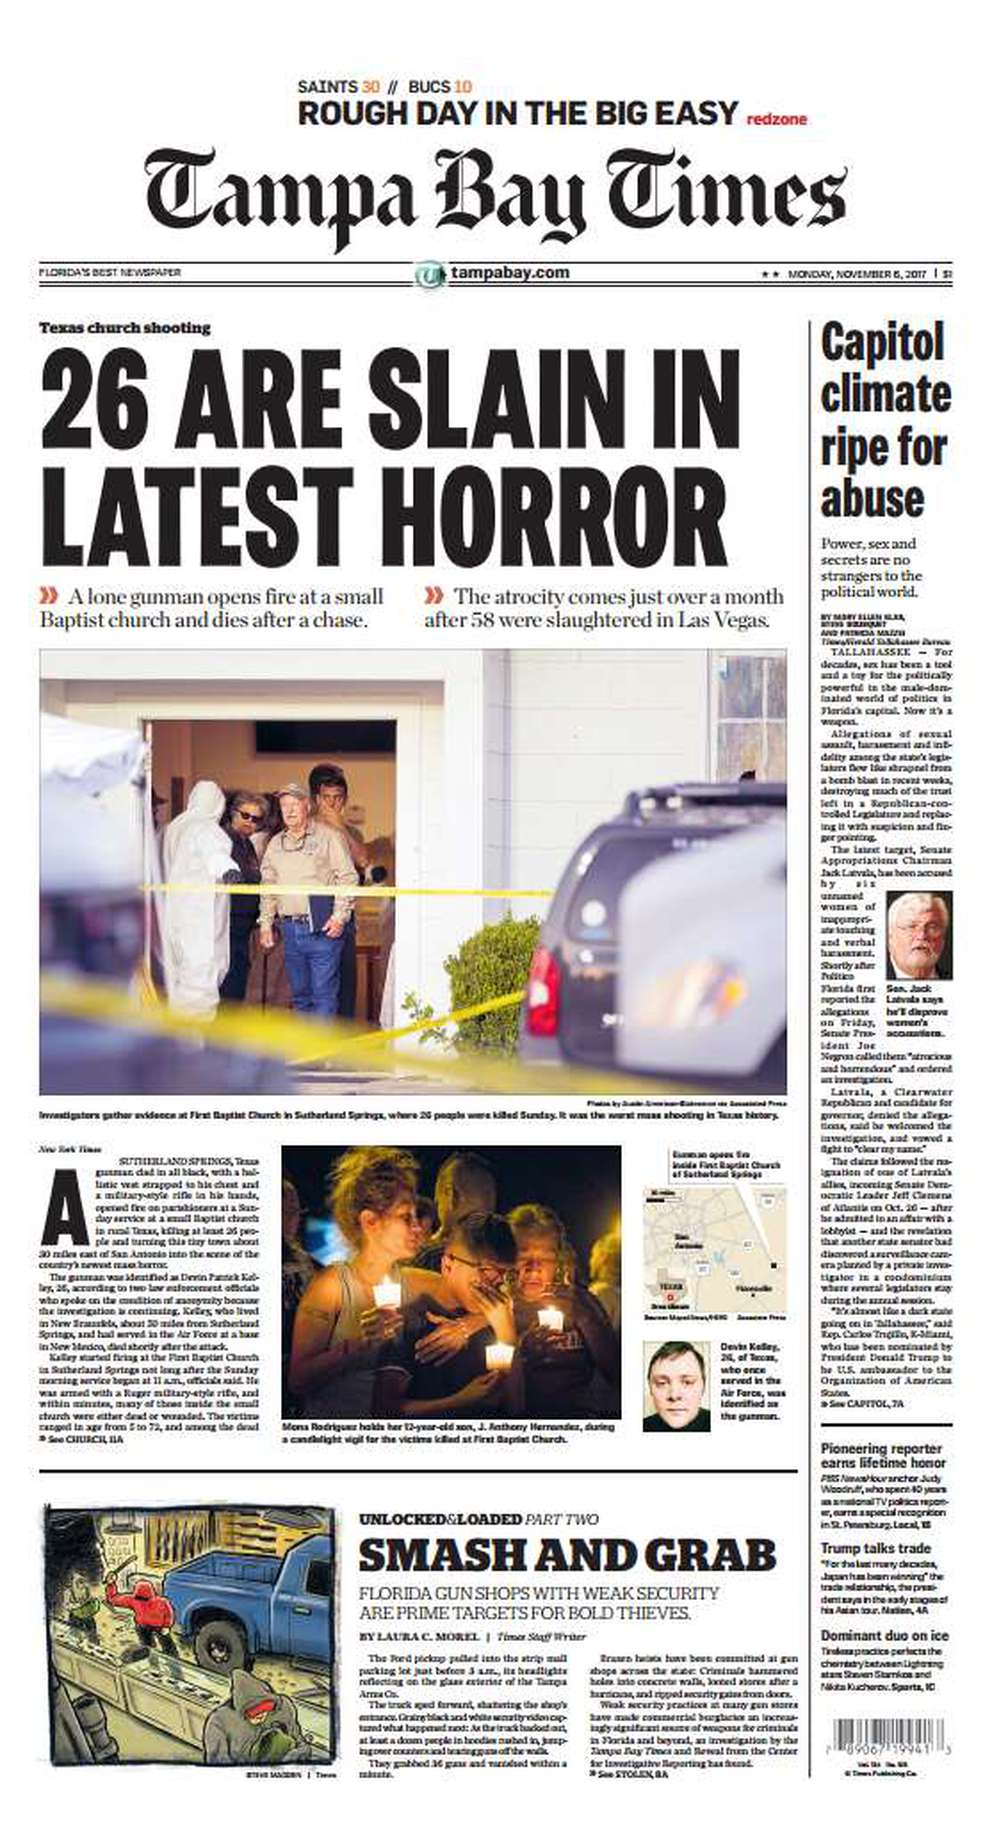 Nov. 5, 2017: 26 killed. The shooter killed 26 people at First Baptist Church in Sutherland Springs, Texas, including eight members of one family. The shooter was later found dead.